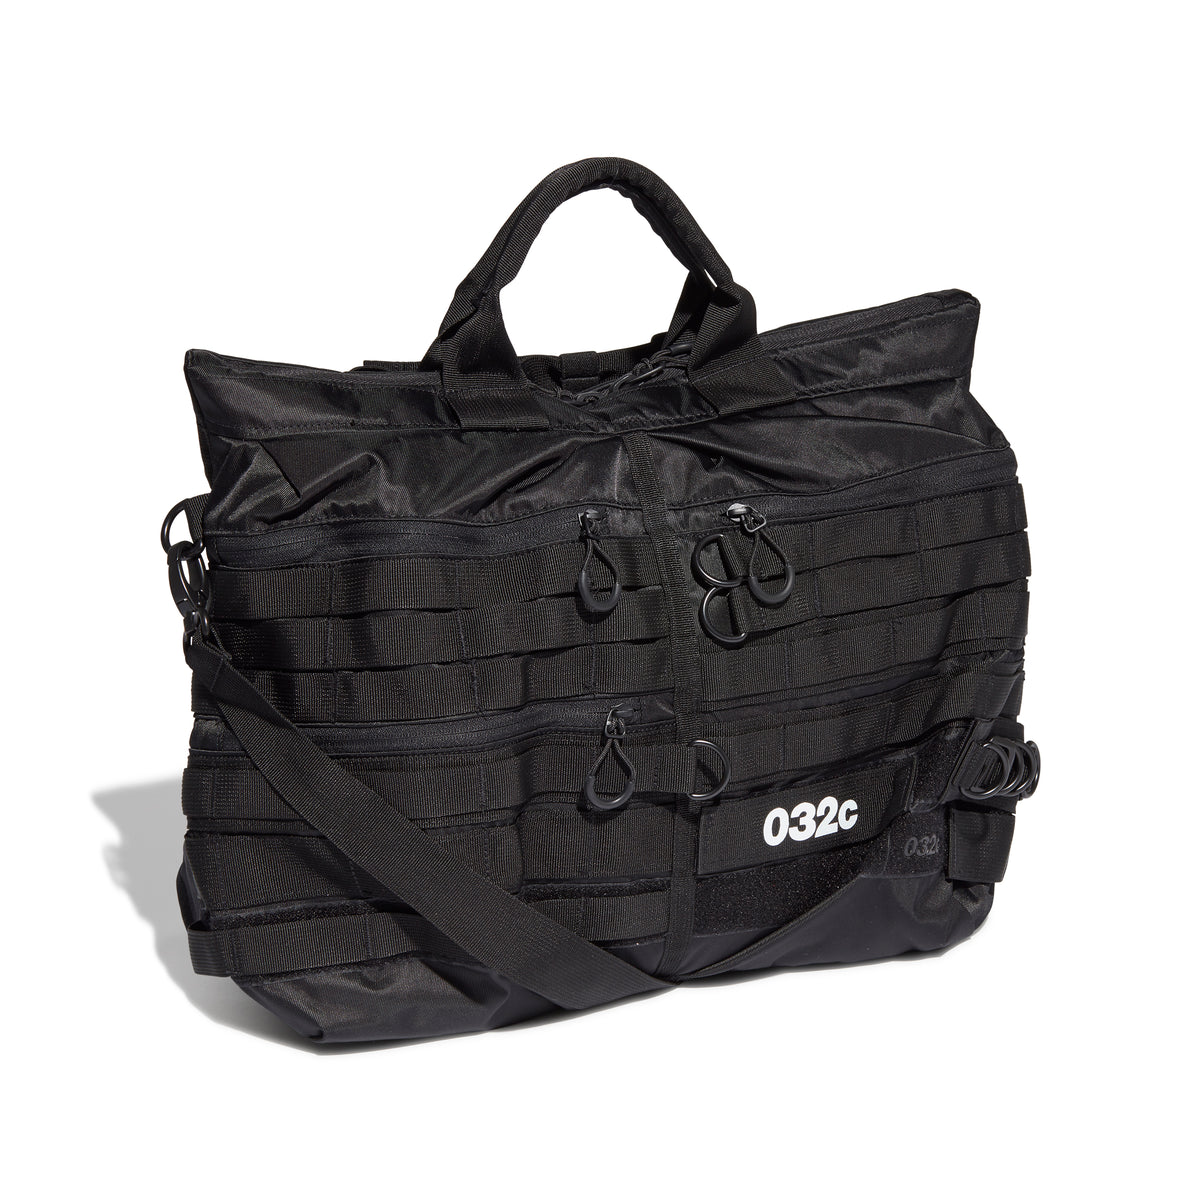 adidas by 032c Duffle Bag - 032c